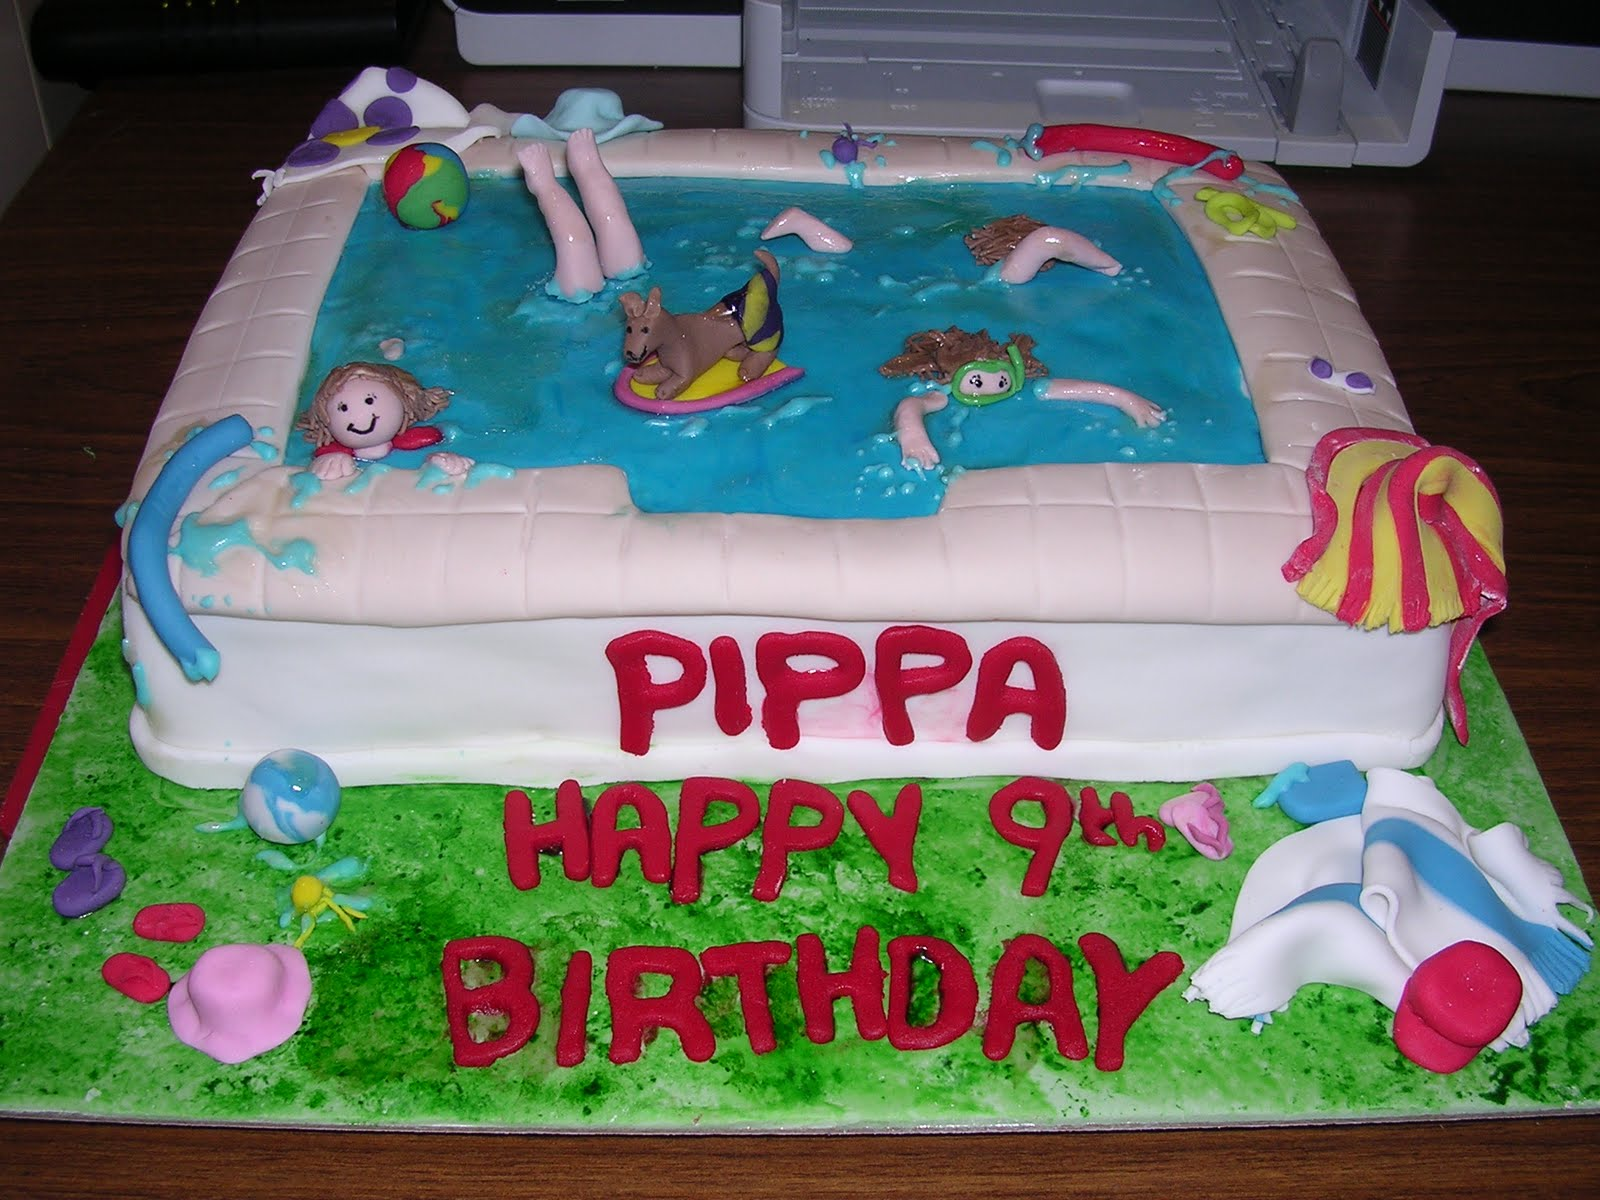 Cake Decorations For Birthday Party : Pool Party Cakes   Decoration Ideas Little Birthday Cakes